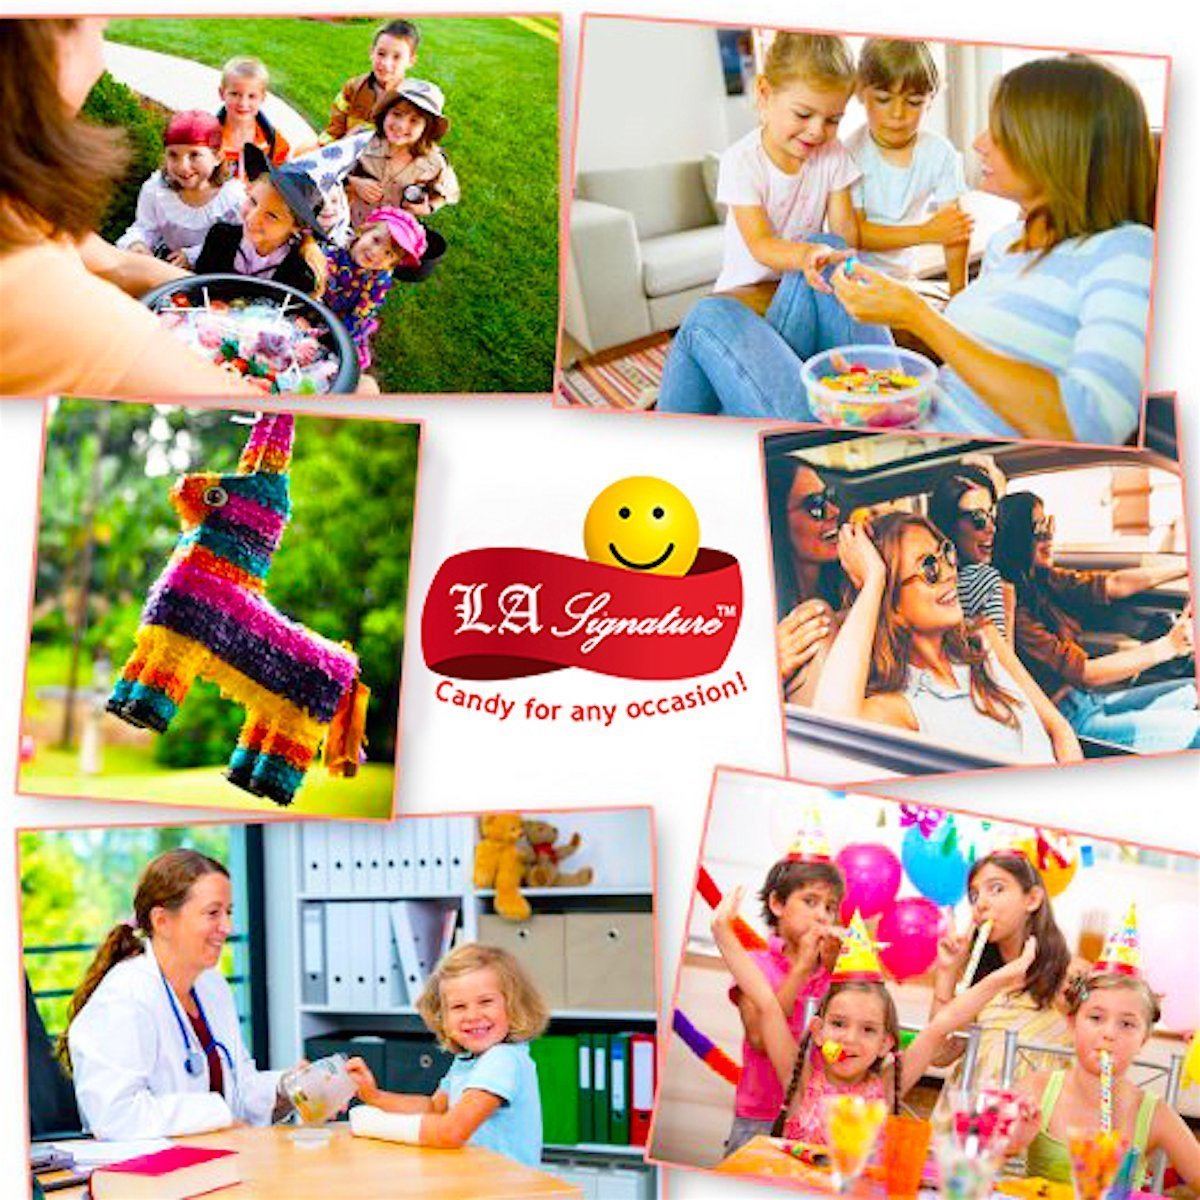 LA Signature Assorted Classic Candy - Huge PARTY MIX Bulk BOX! 11.25 lbs / 180 oz Classic Candies Like Hi-Chew Starburst Haribo Skittles Swedish Fish SweeTarts Sour Patch Tootsie over 430 pieces by LA Signature (Image #5)